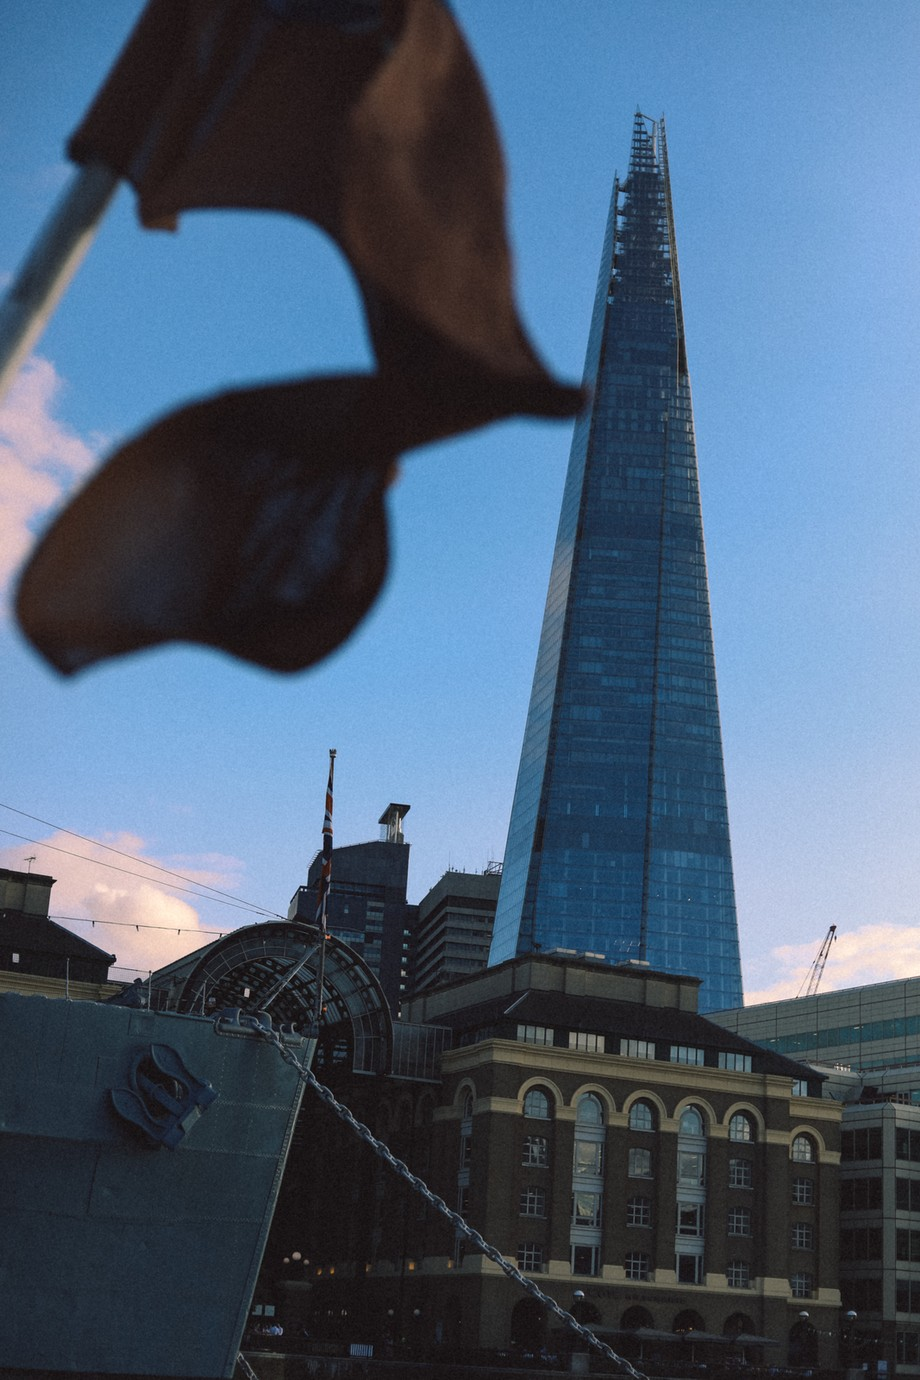 this was while on board a boat, photographing the shard, good timing!